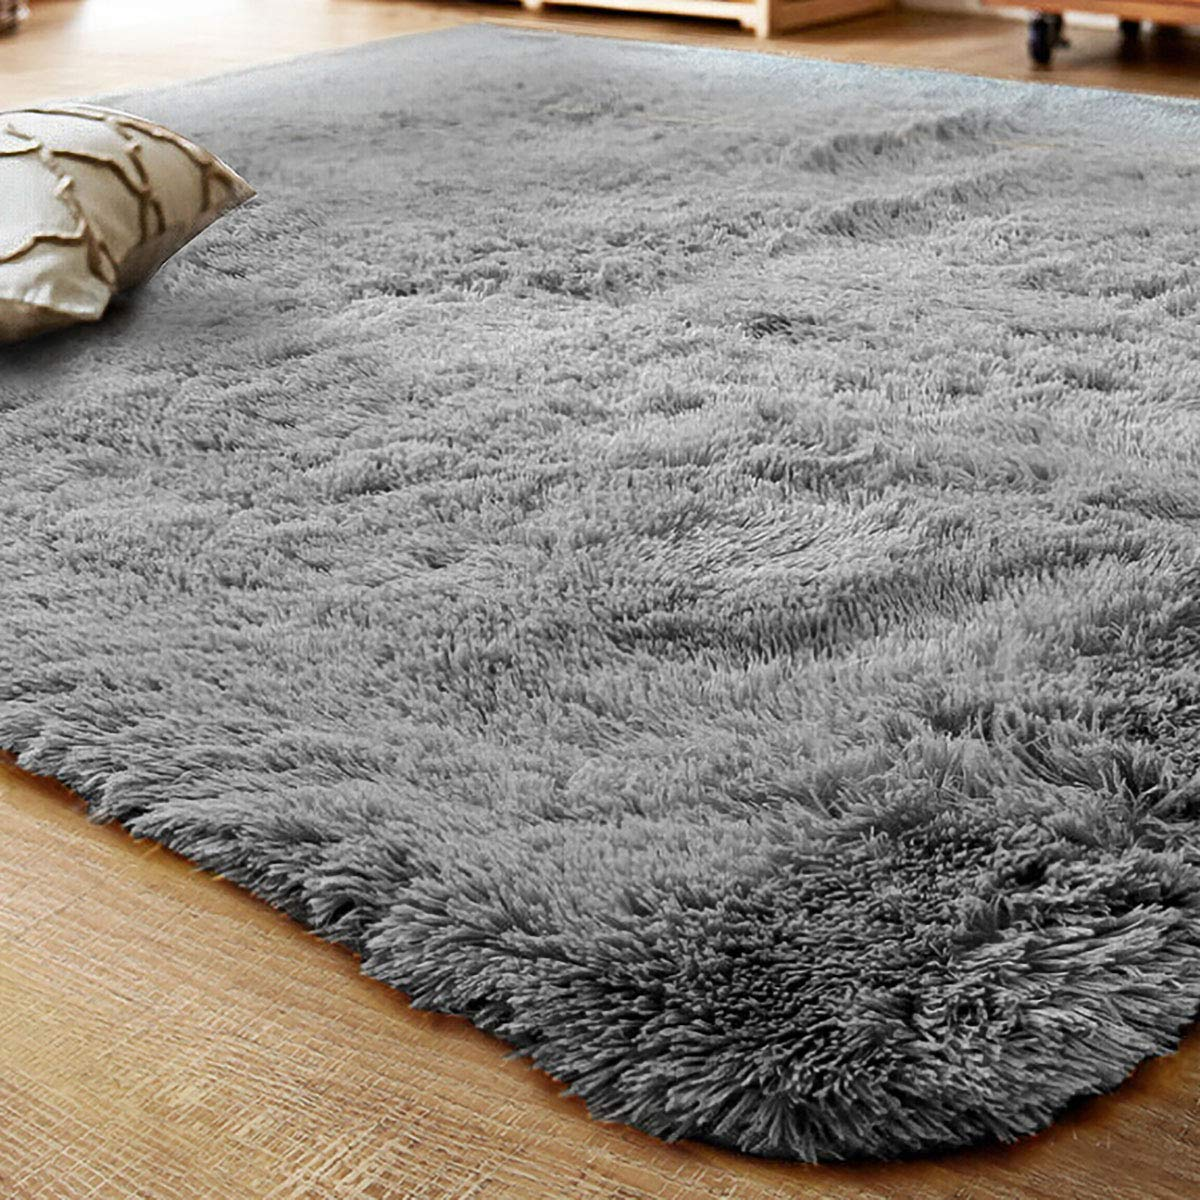 LOCHAS Ultra Soft Indoor Area Rug Thick Shaggy Bedroom Living Room Carpets for Kids Nursery Room, 5.3 x 7.5 Feet Grey